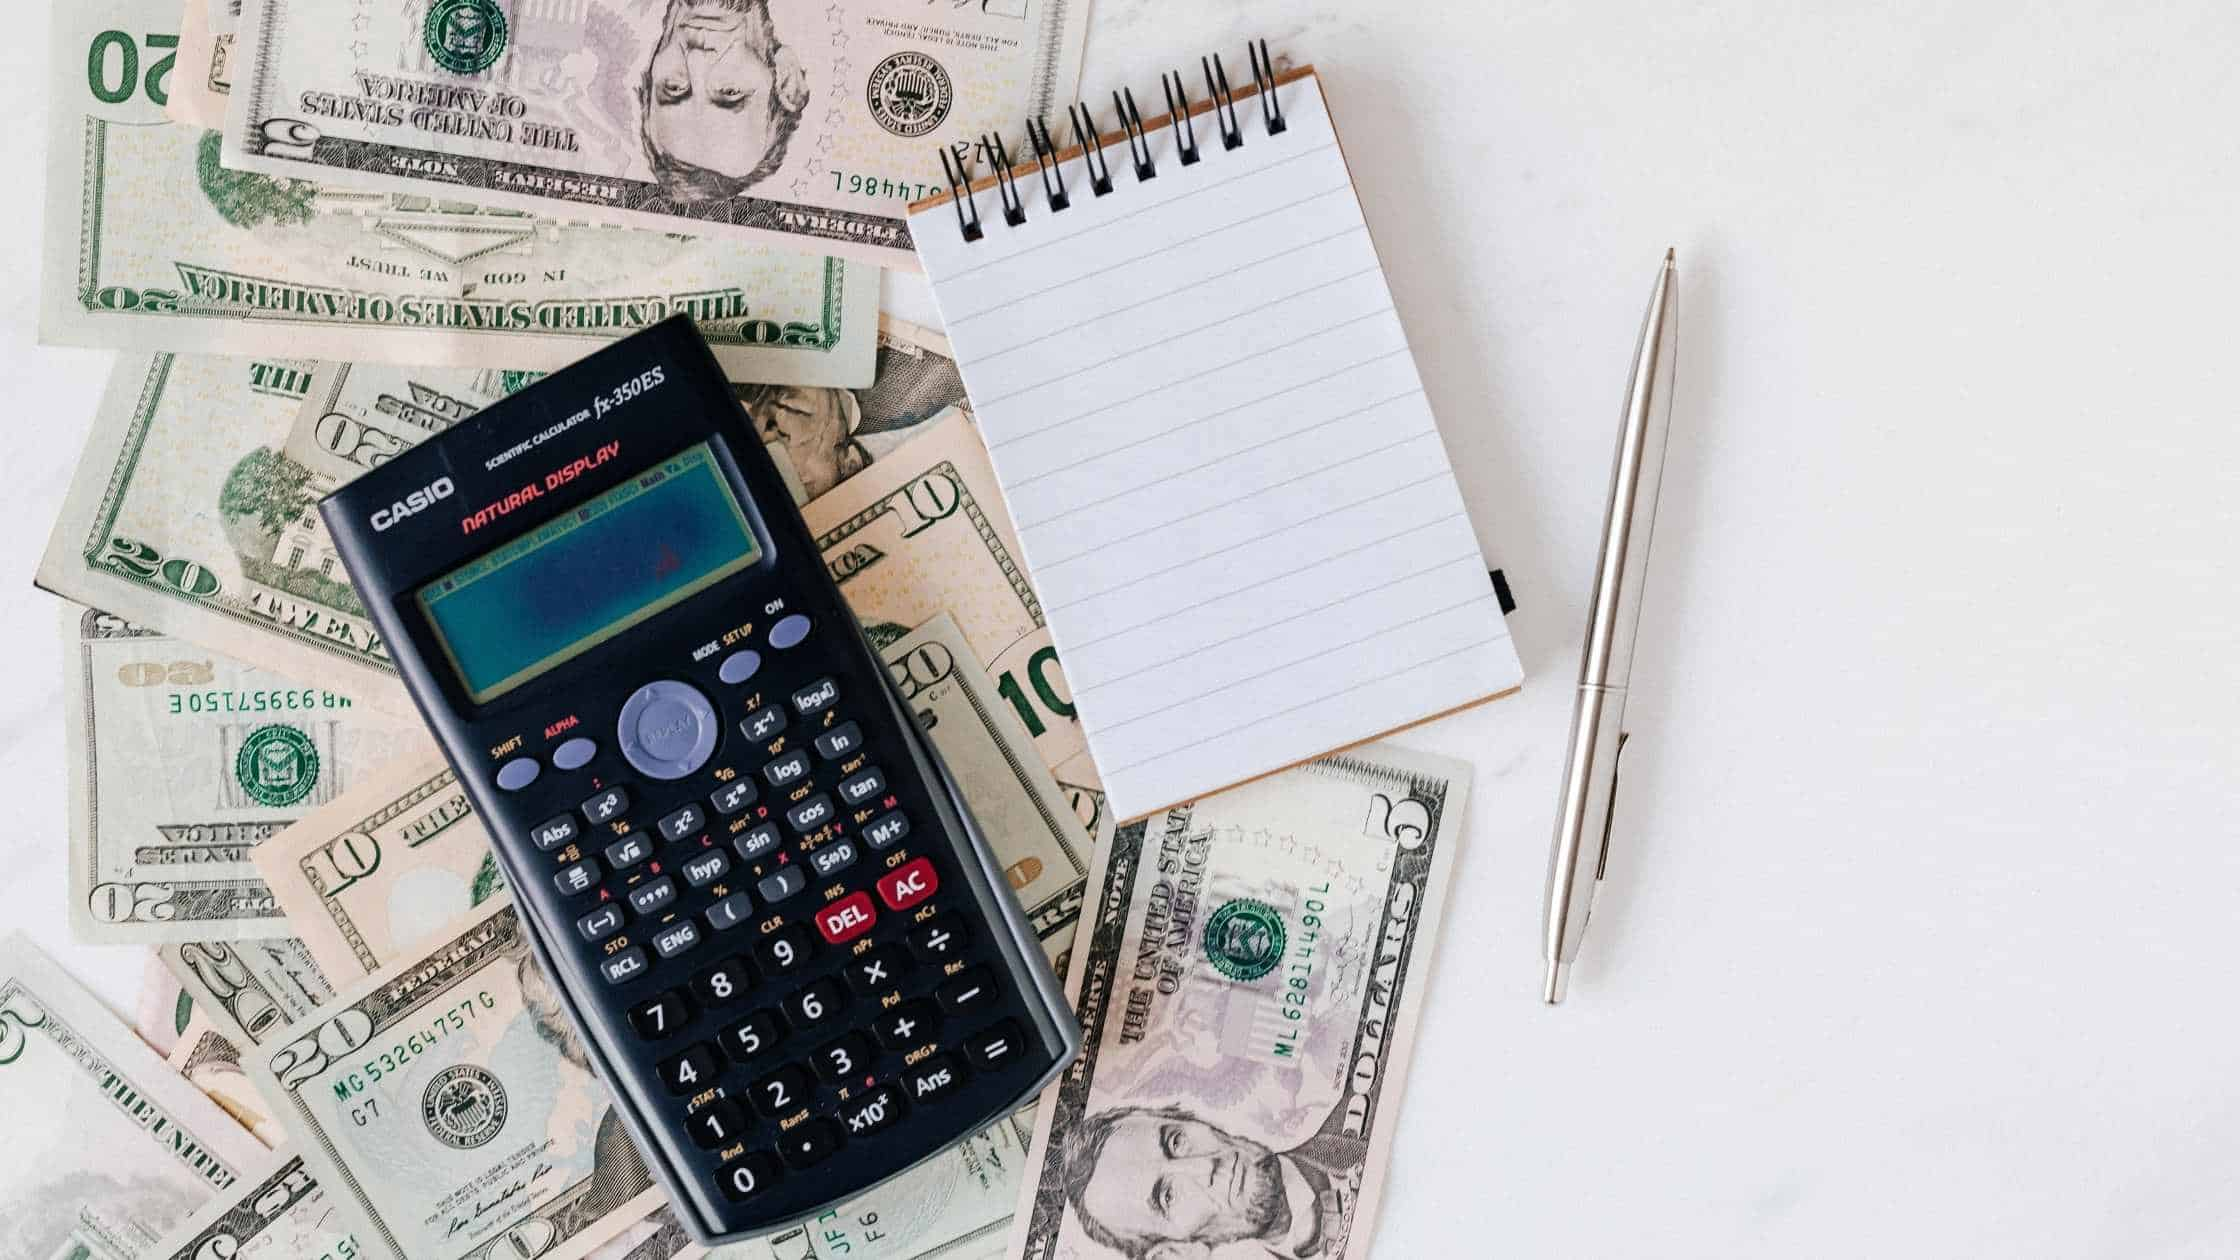 A black calculator, small notepad, and silver pen laid out on a table on top of a bunch of strewn money in the form of 5, 10, and 20 dollar bills